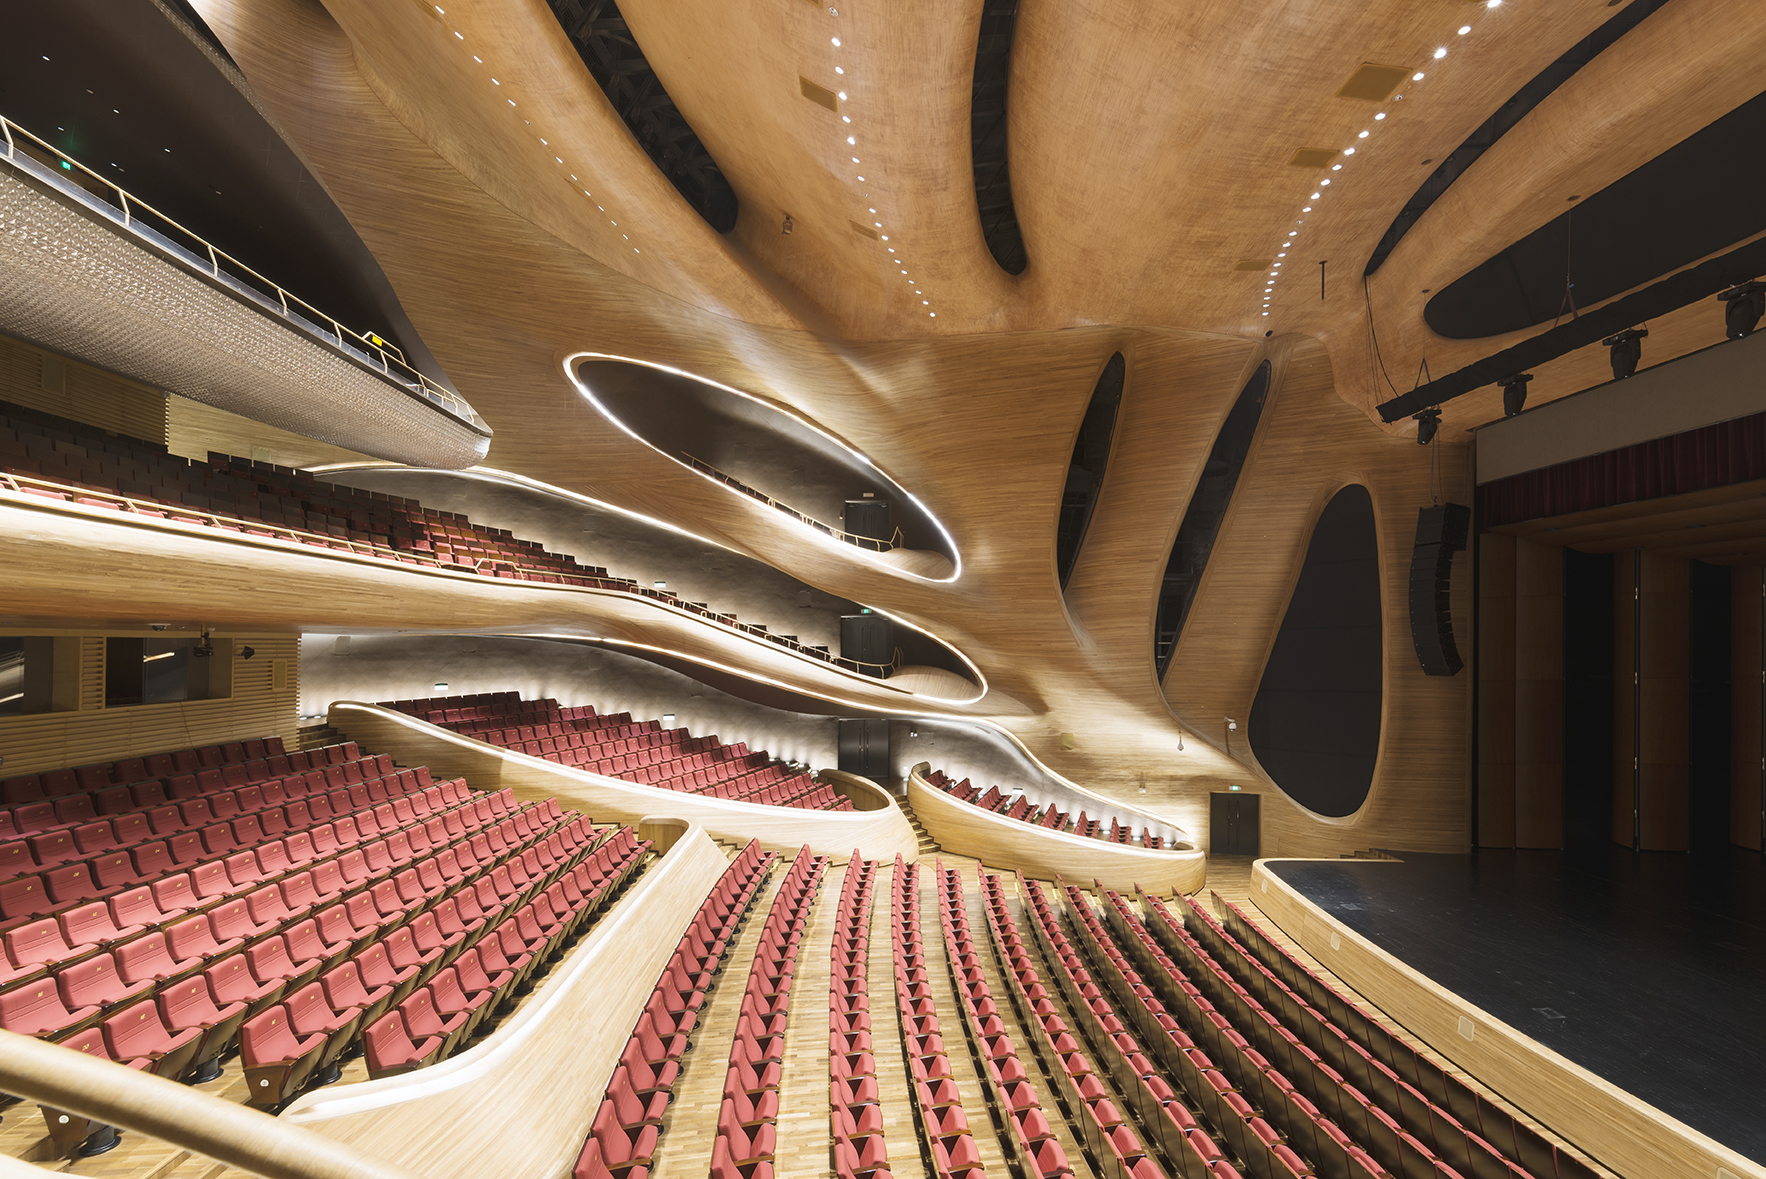 Spectacular Harbin Grand Theatre in China